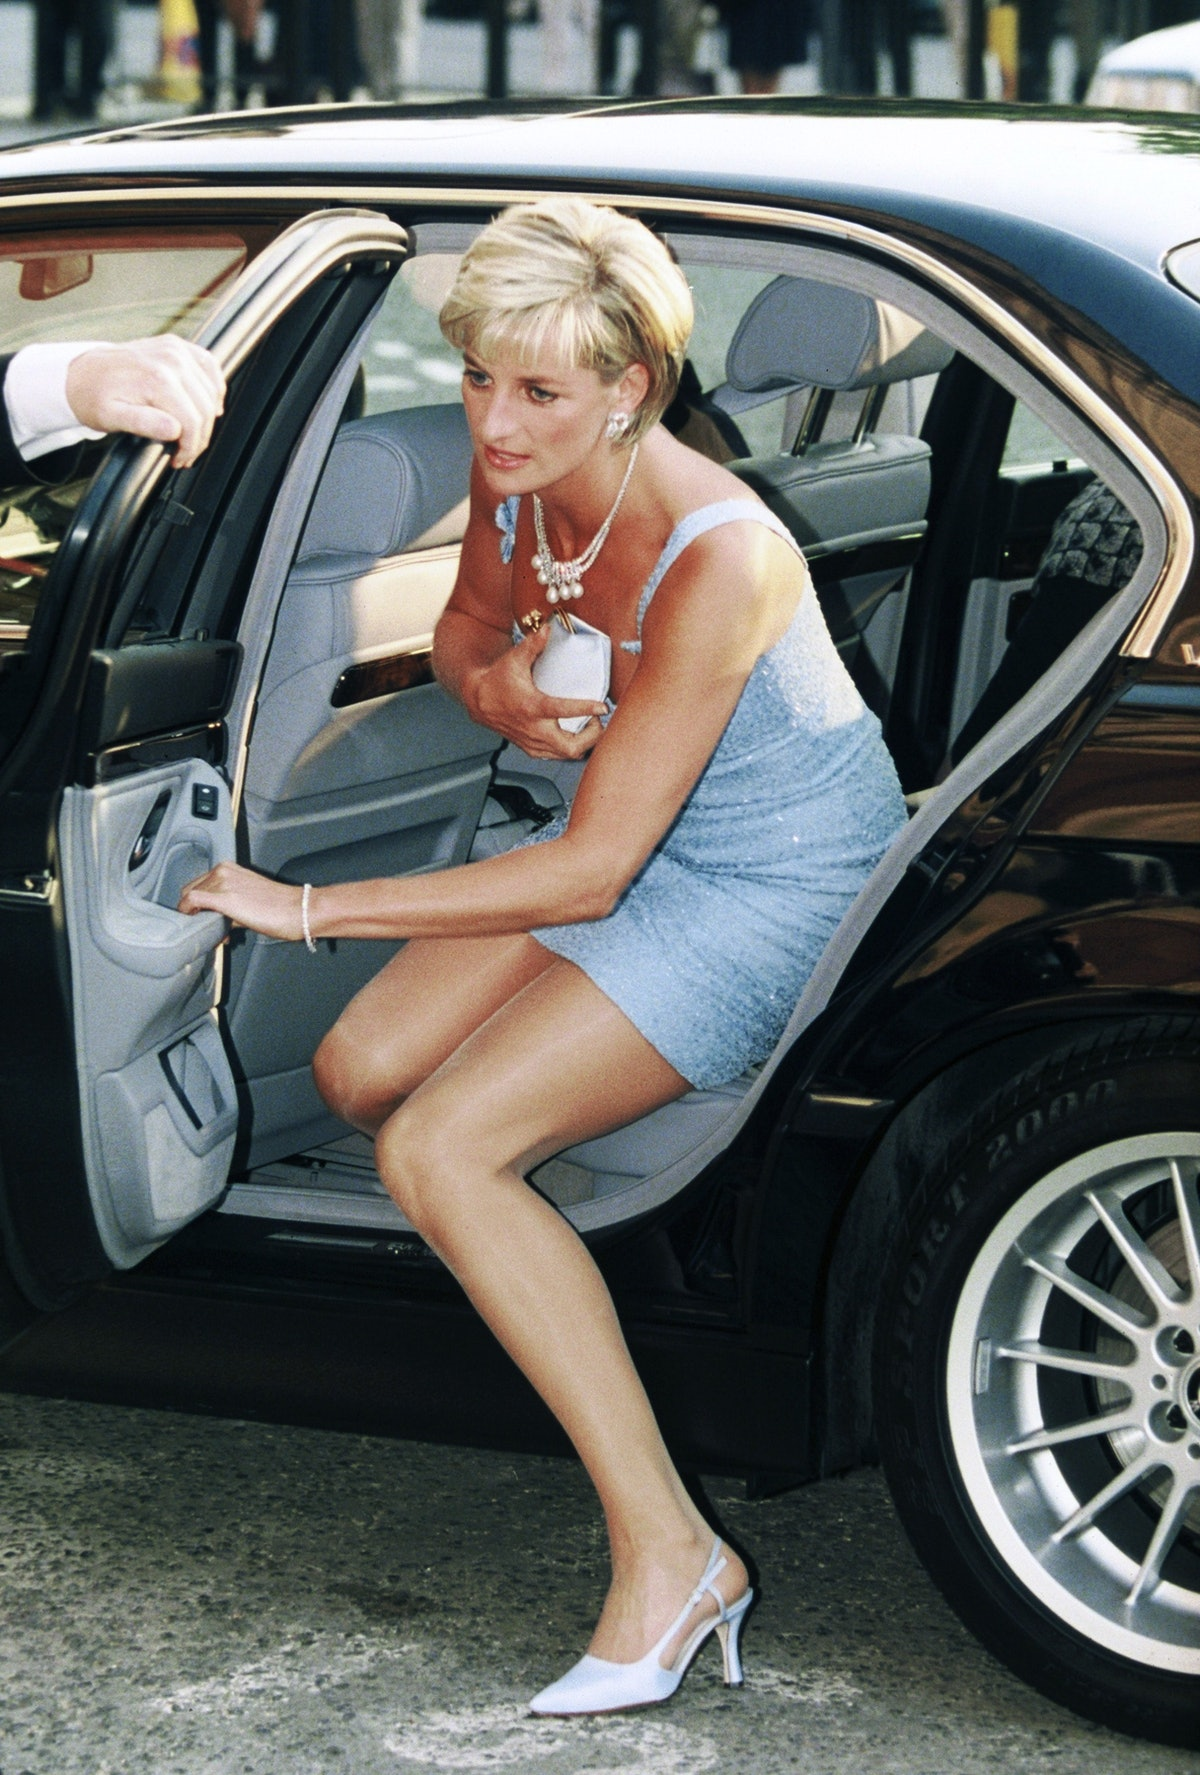 In memory of Diana, Princess of Wales, who was killed in an automobile accident in Paris, France on ...